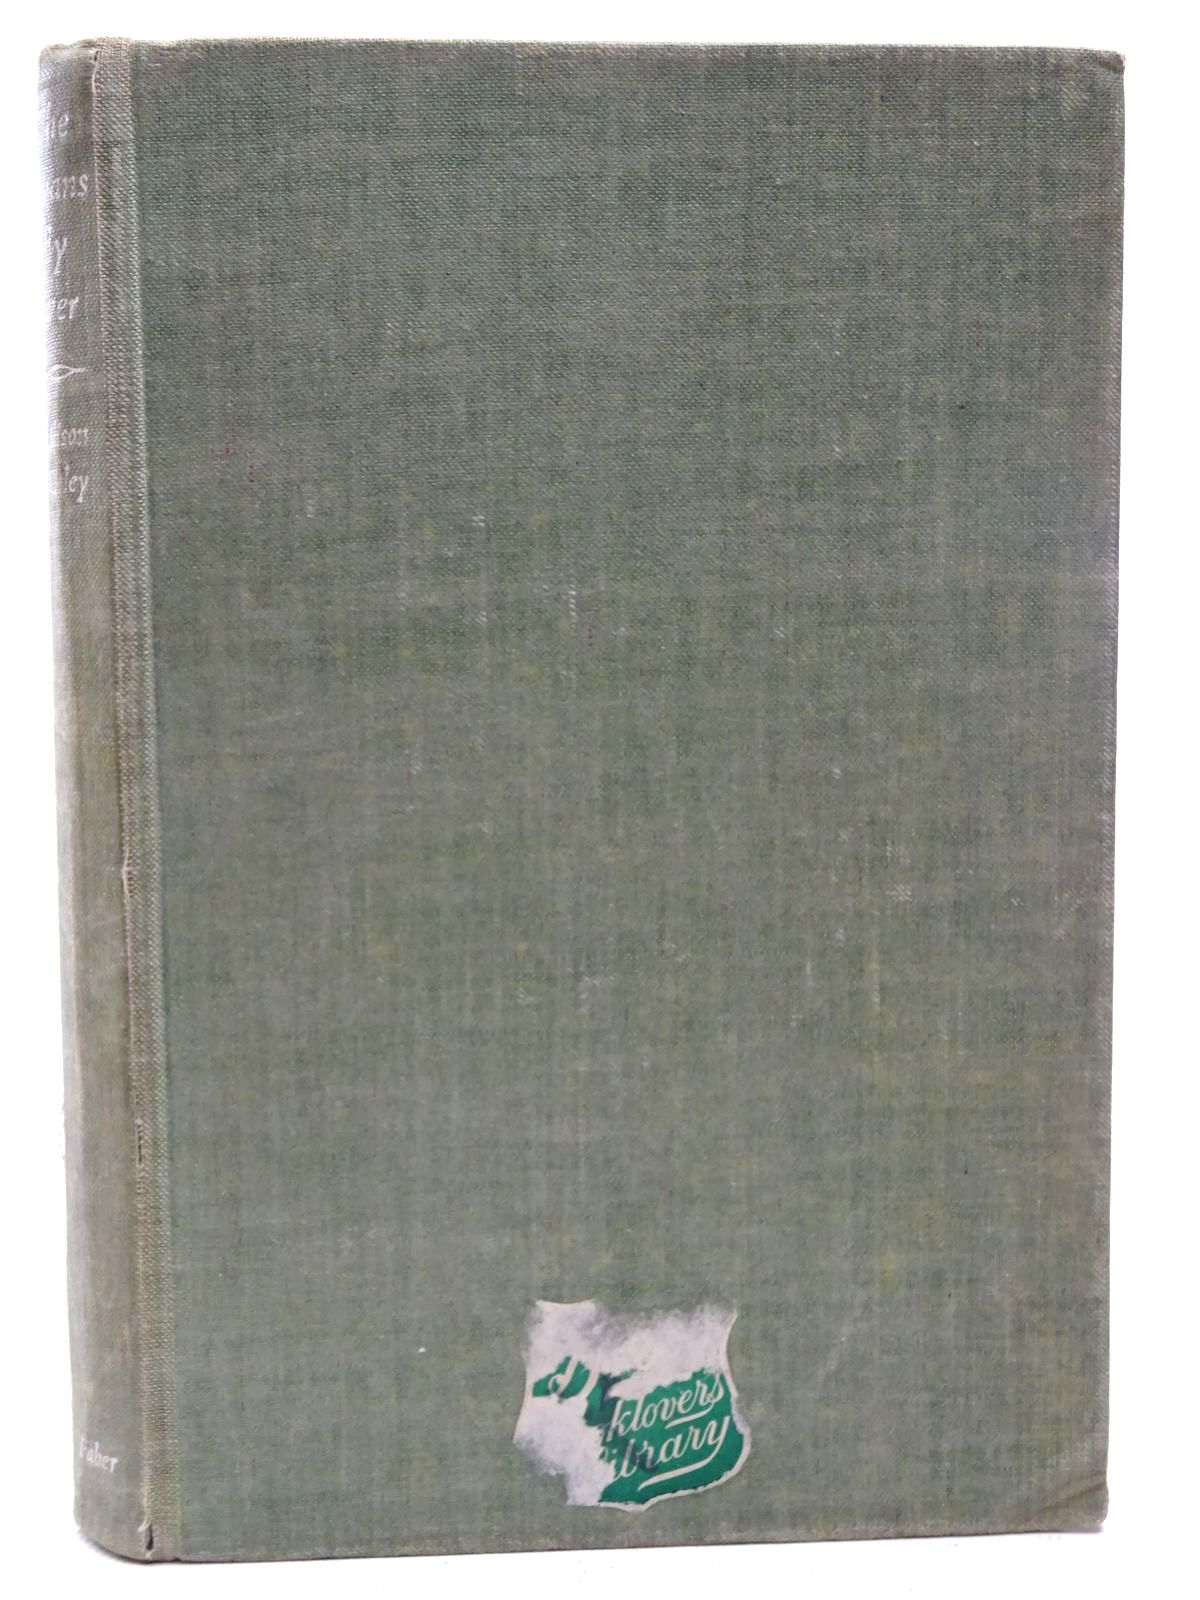 Photo of THE SWANS FLY OVER written by Uttley, Alison illustrated by Tunnicliffe, C.F. published by Faber & Faber (STOCK CODE: 2126273)  for sale by Stella & Rose's Books